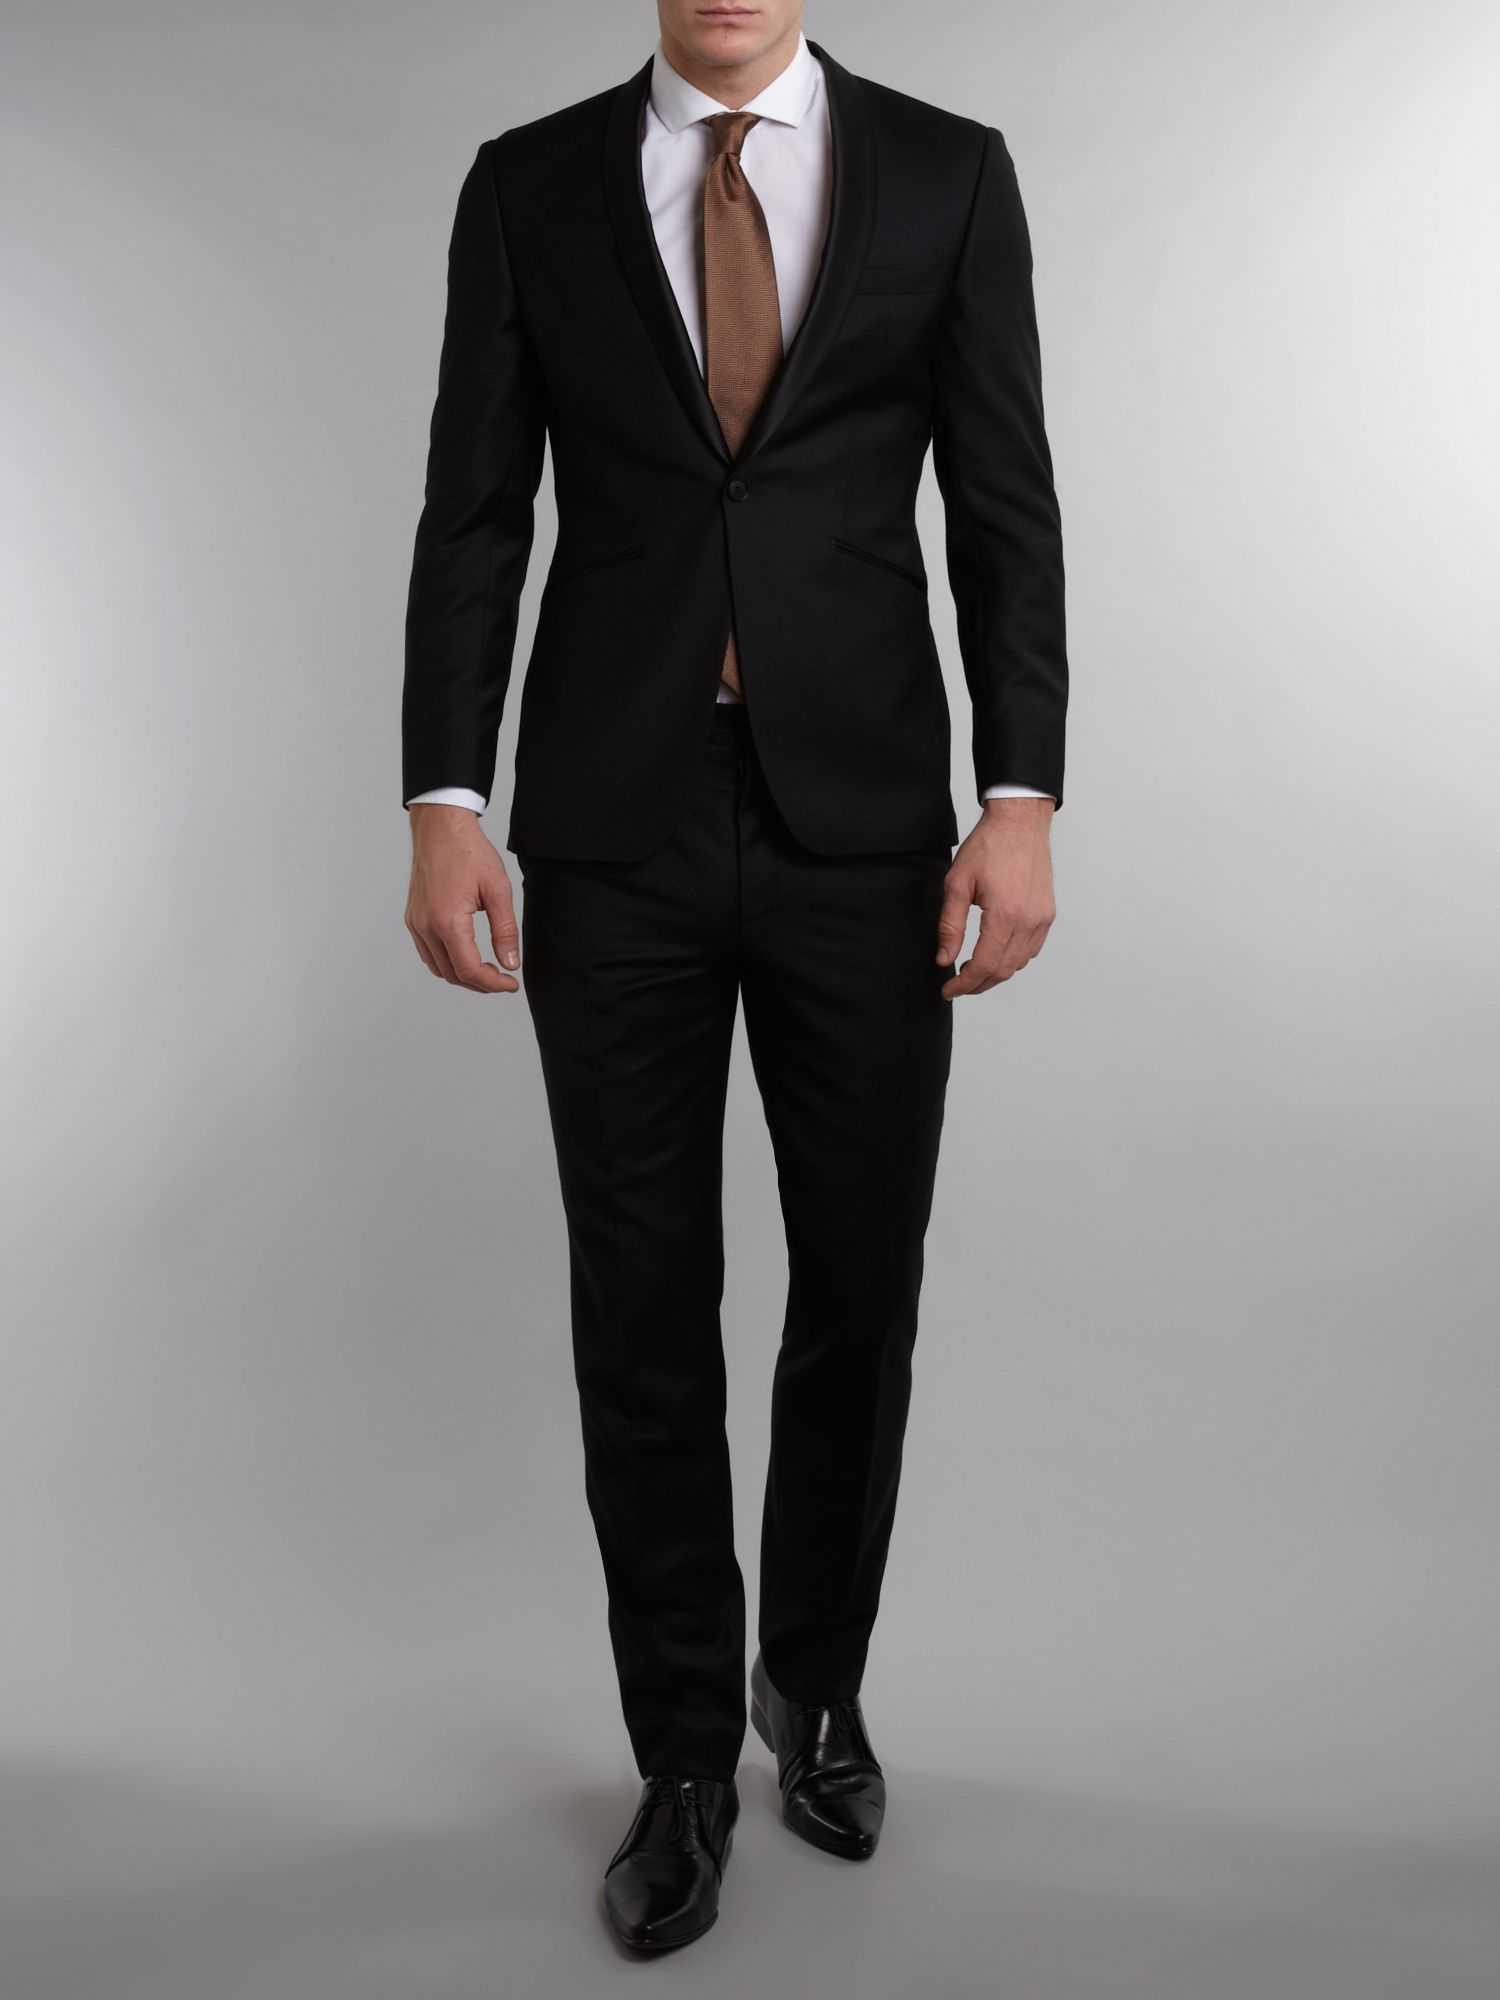 Find great deals on eBay for grey flannel suit. Shop with confidence.